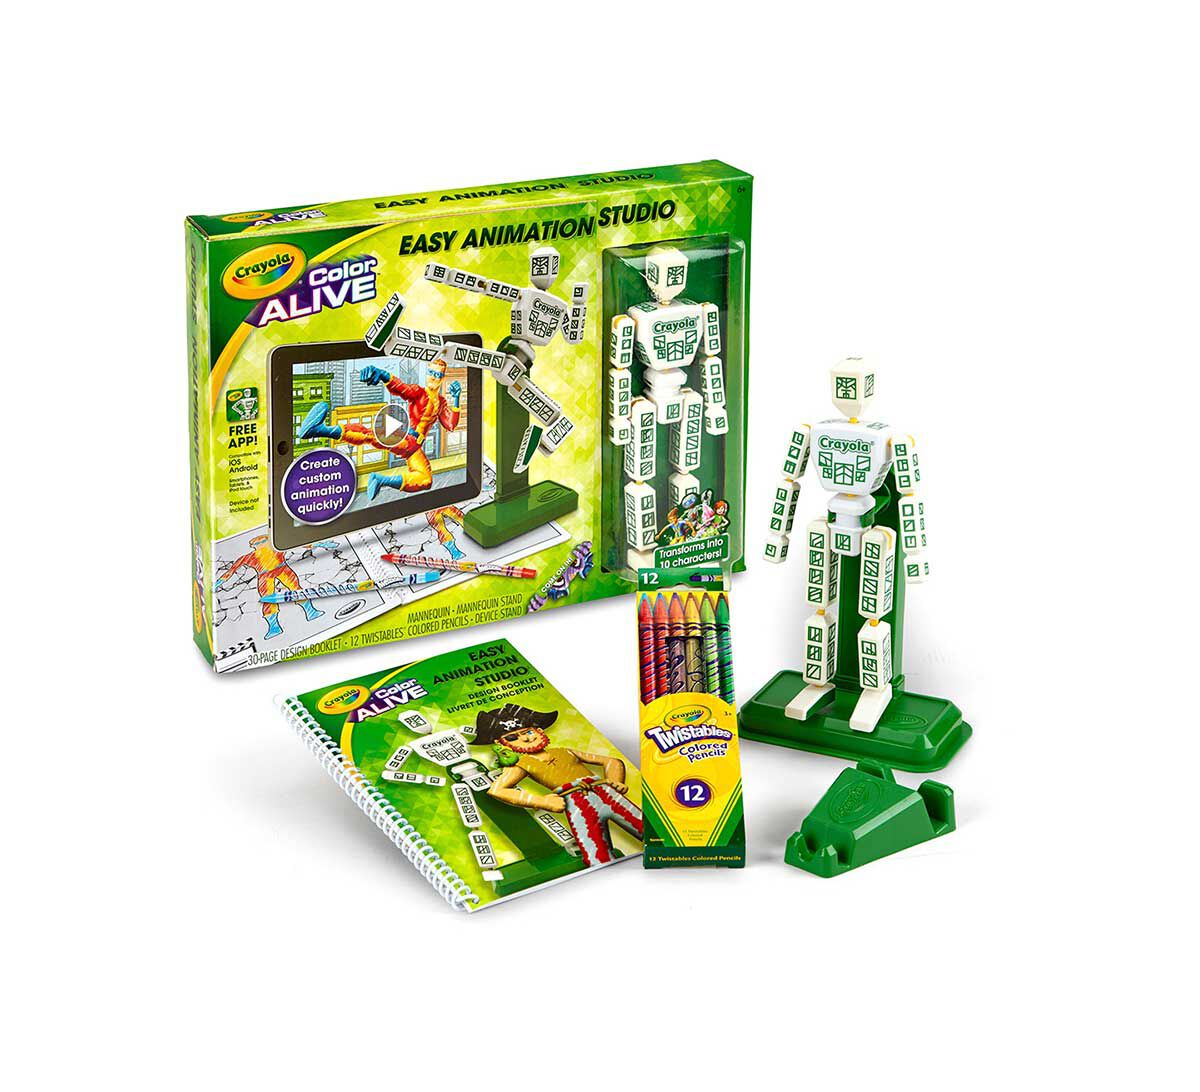 easy animation studio crayola